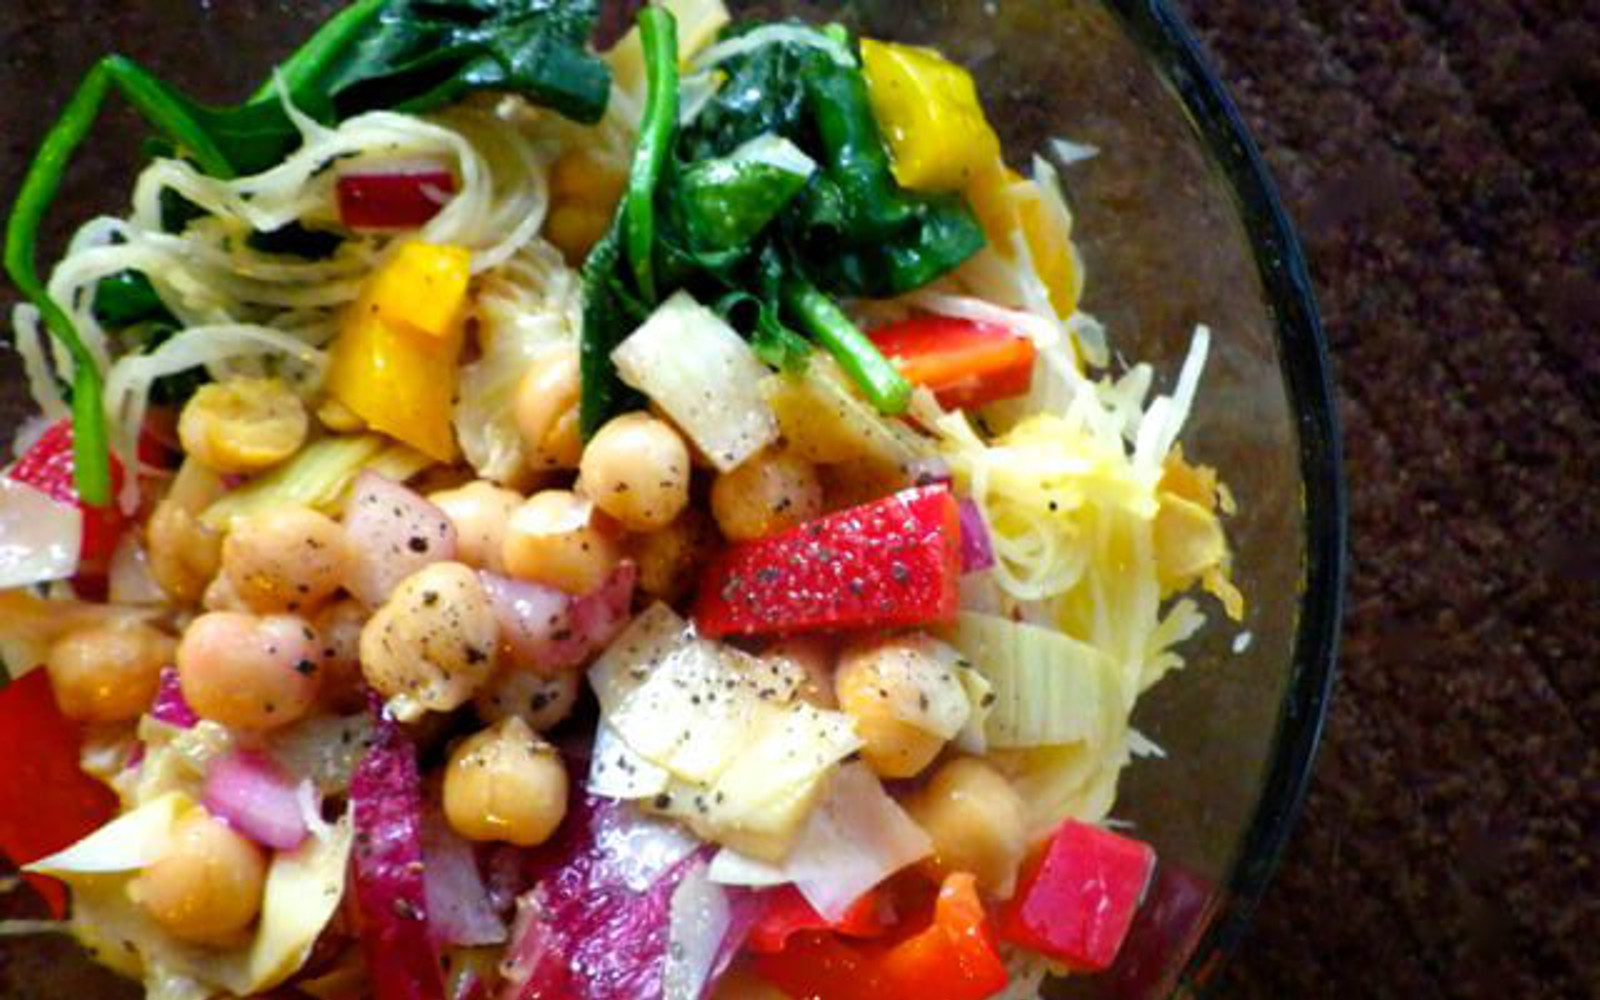 Vegan, Gluten-Free Marinated Chickpea and Artichoke Salad with peppers and spaghetti squash